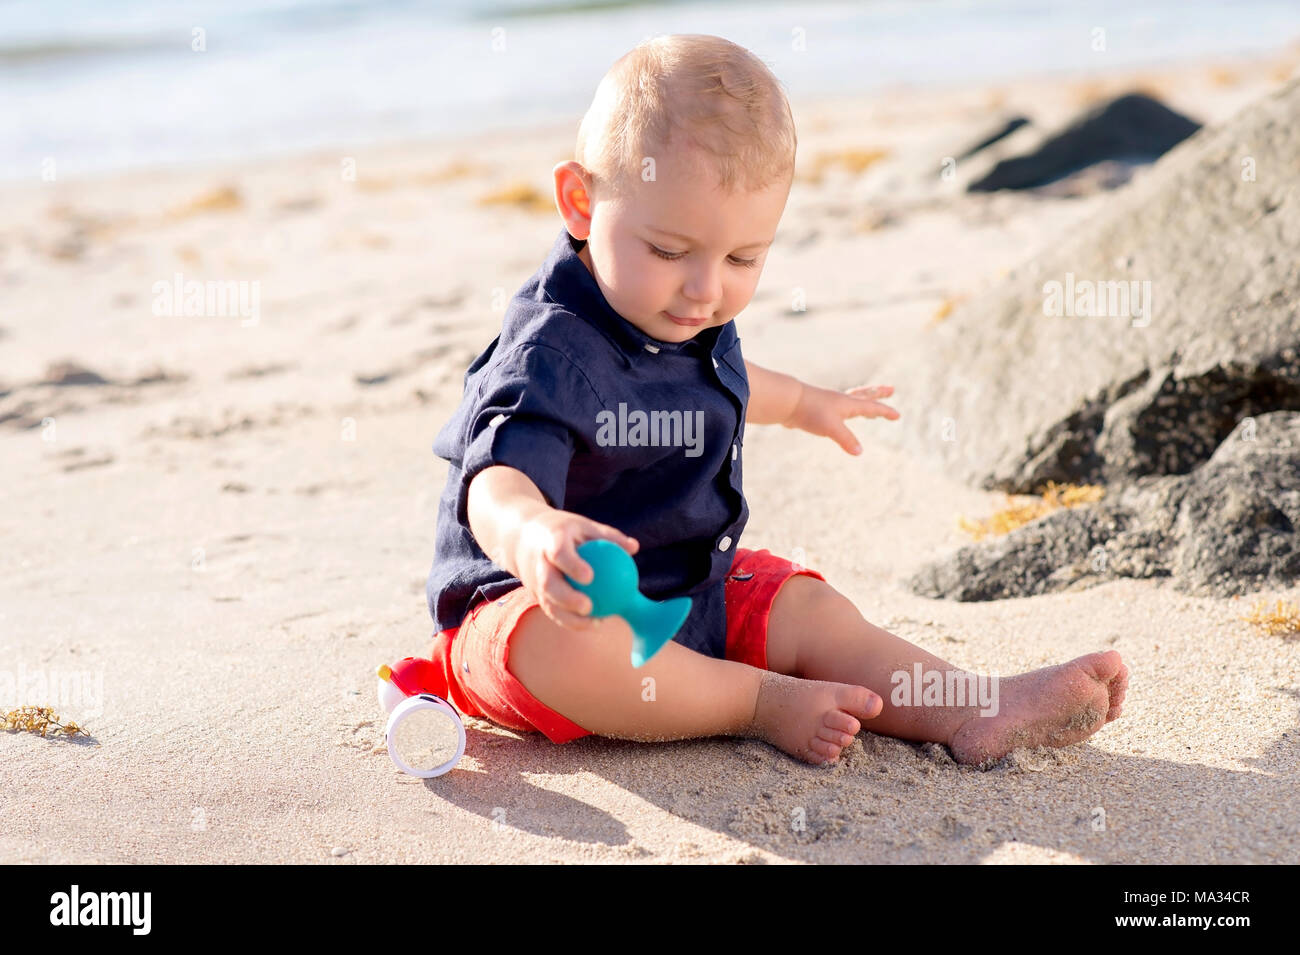 ein 1 jahr altes baby junge sitzt auf einem strand und spielen mit einem spielzeug stockfoto. Black Bedroom Furniture Sets. Home Design Ideas